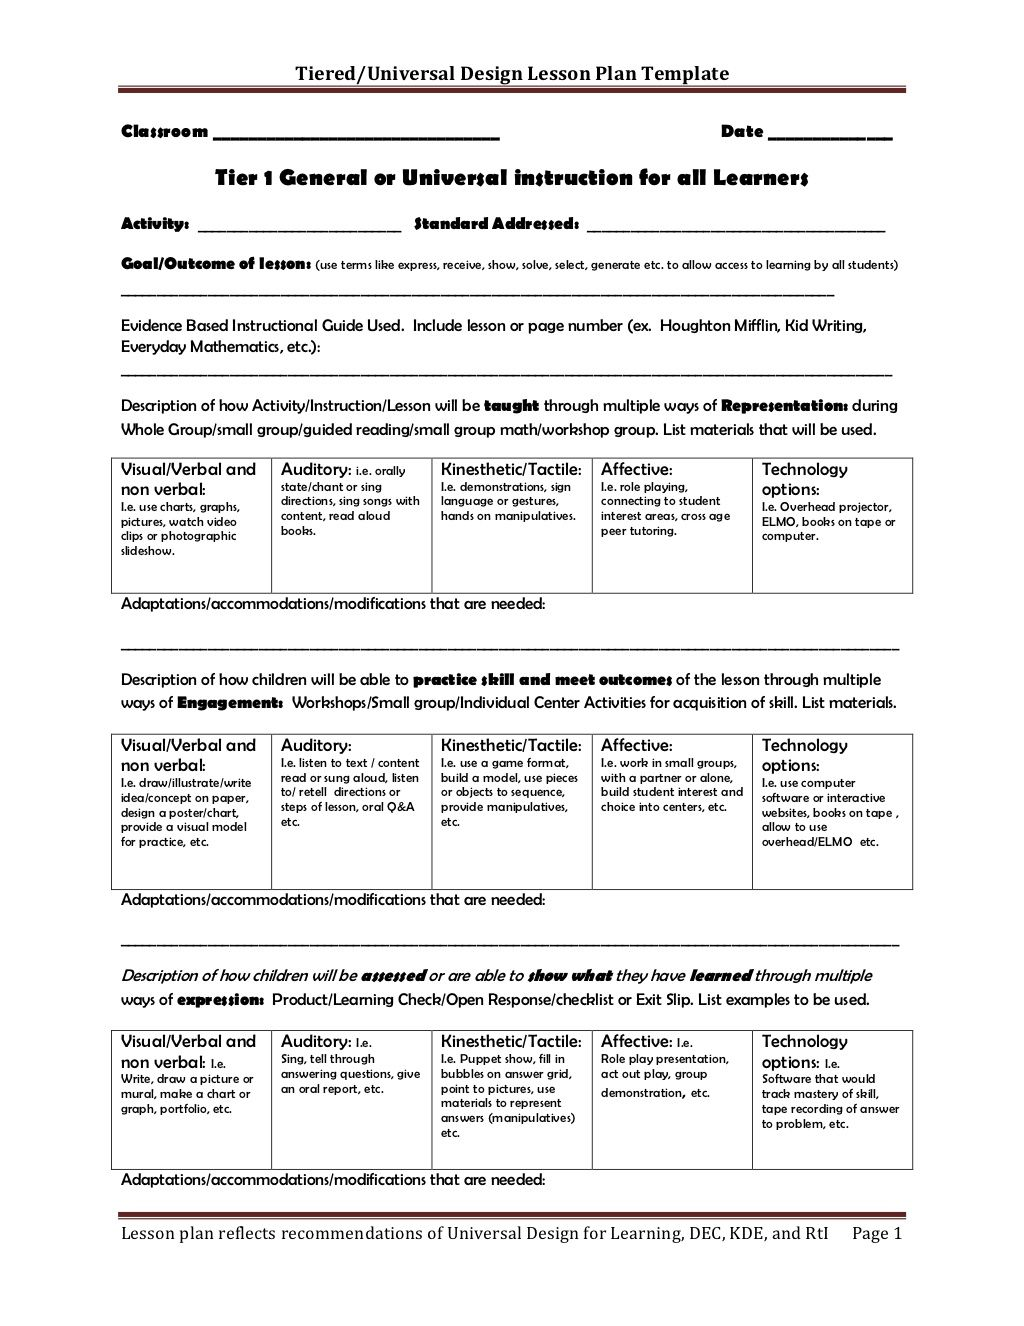 Tiered Lesson Plan Template By Letitia Wilburn Via